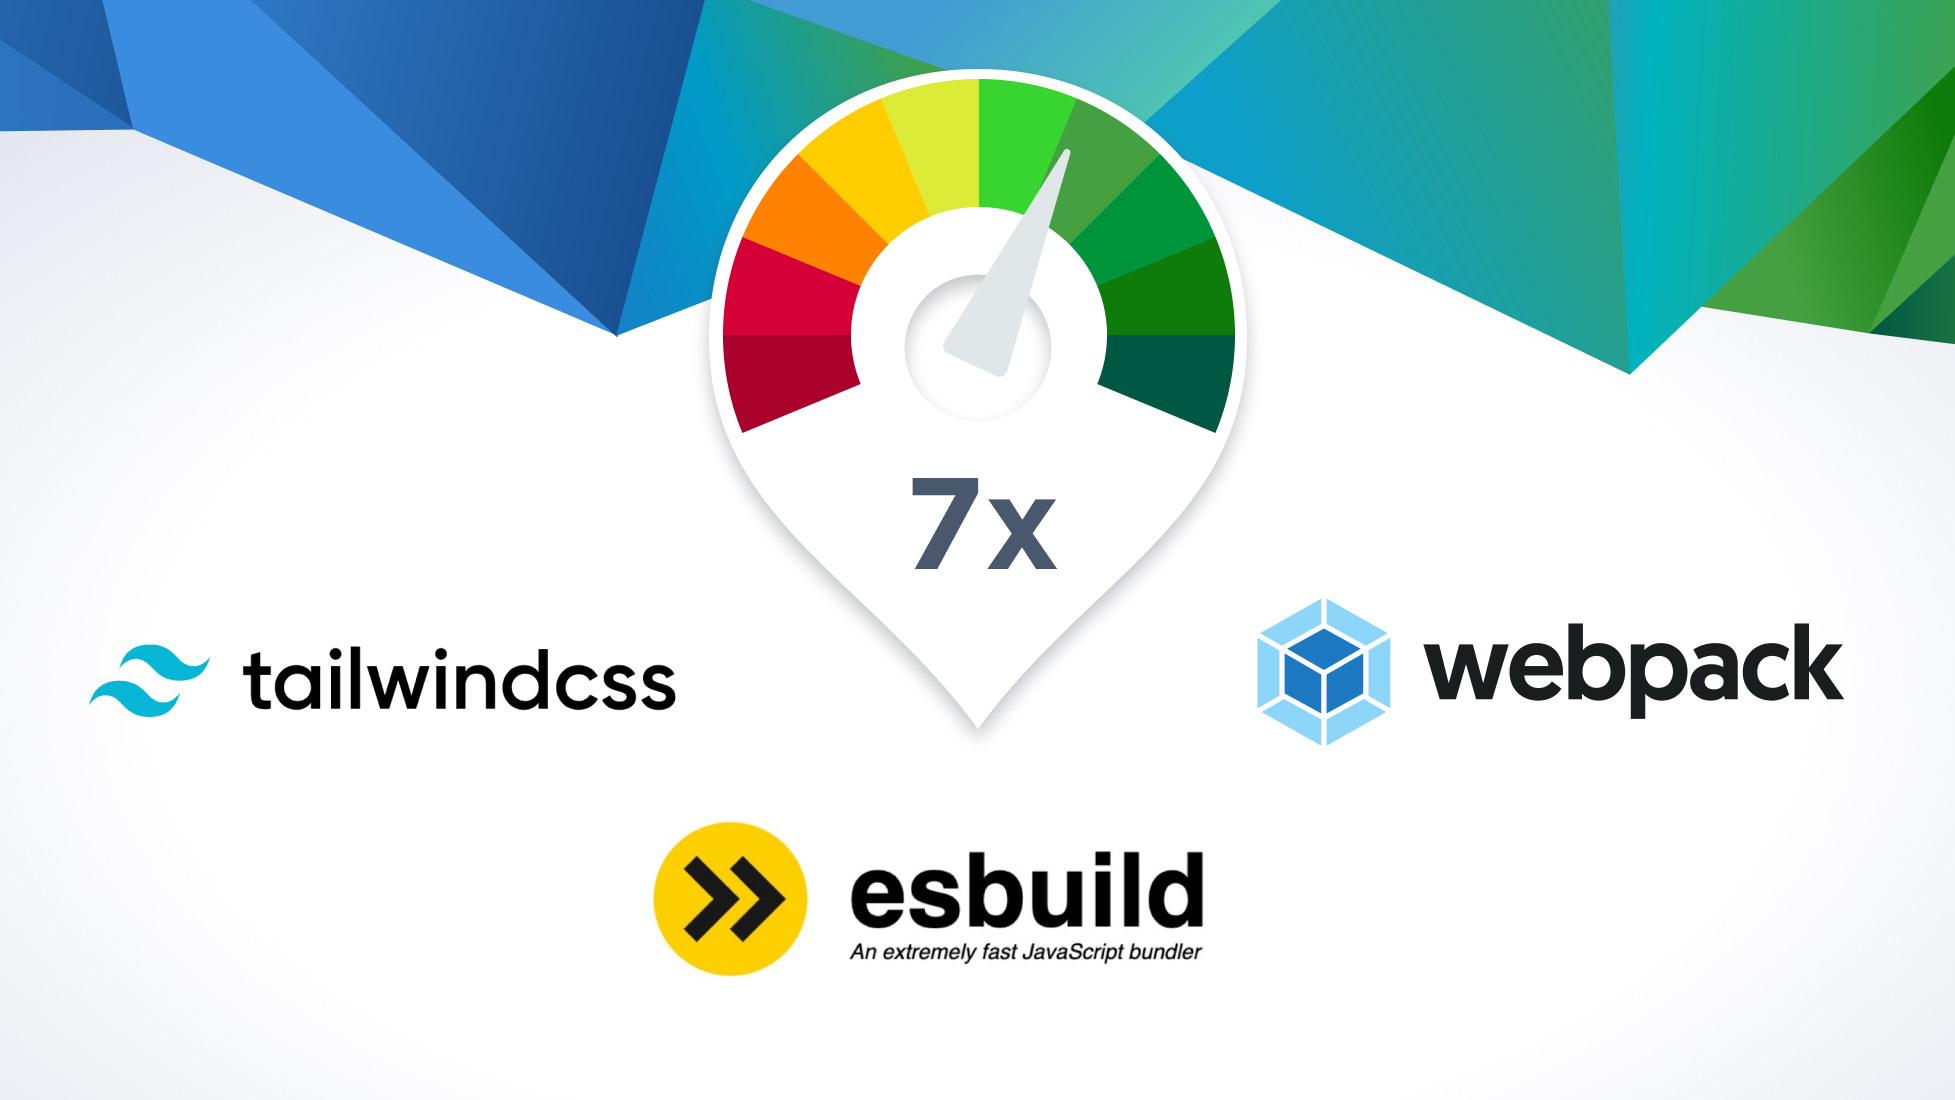 How We Achieved a 7x Speed-Up of Our Webpack (TailwindCSS) Build